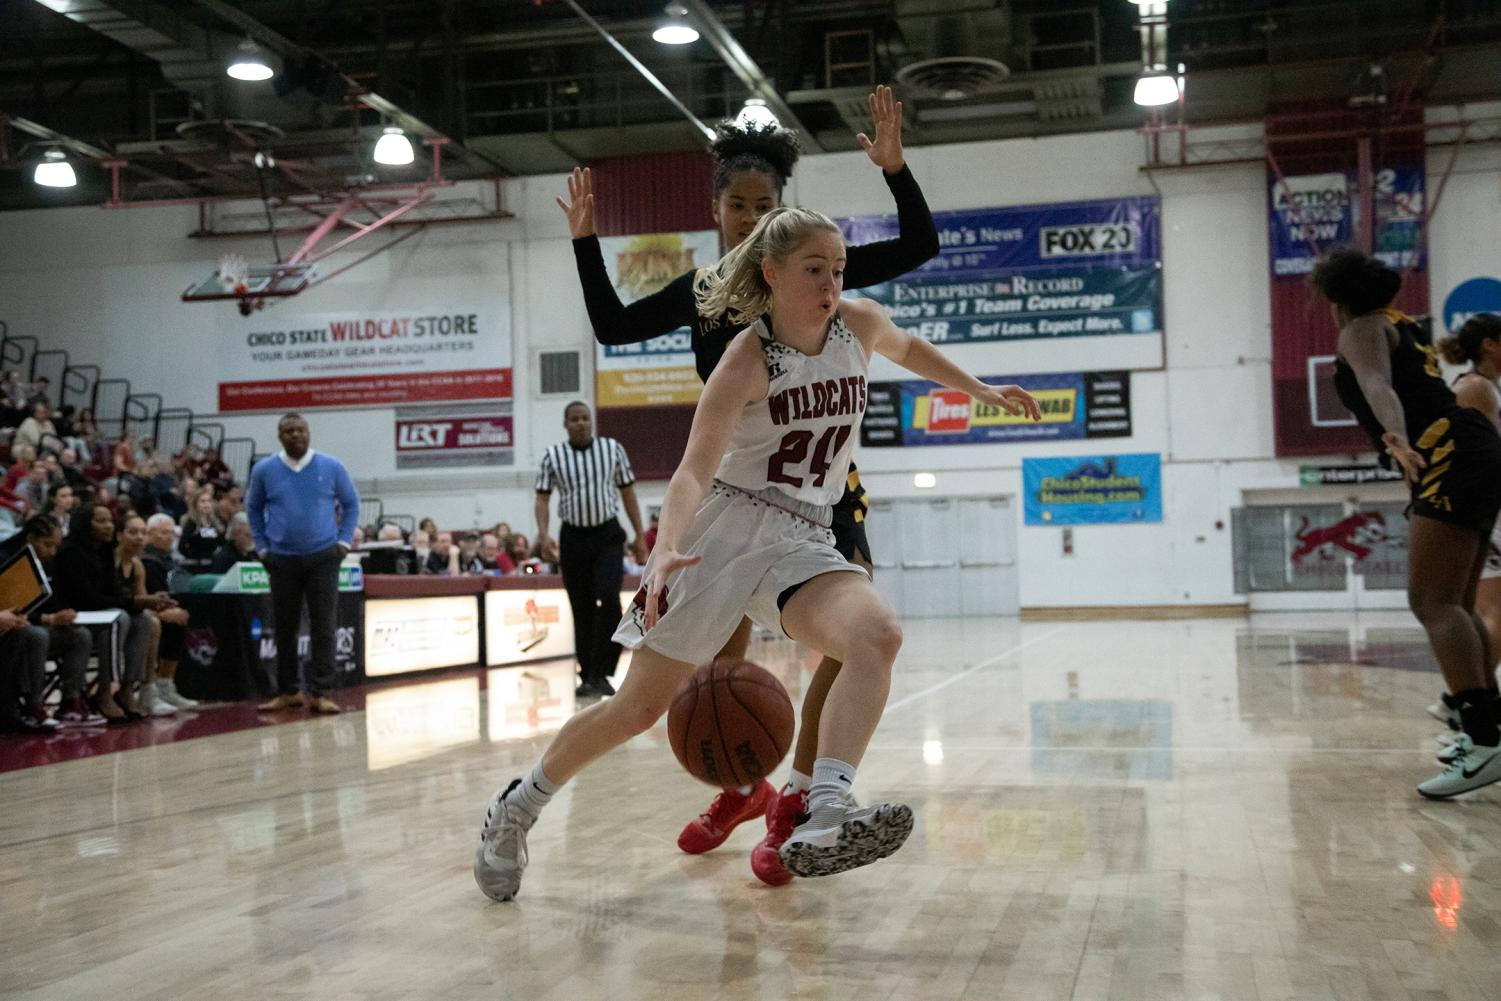 Cal State LA women's basketball team gets defeated by Chico State in a game of 57-69.